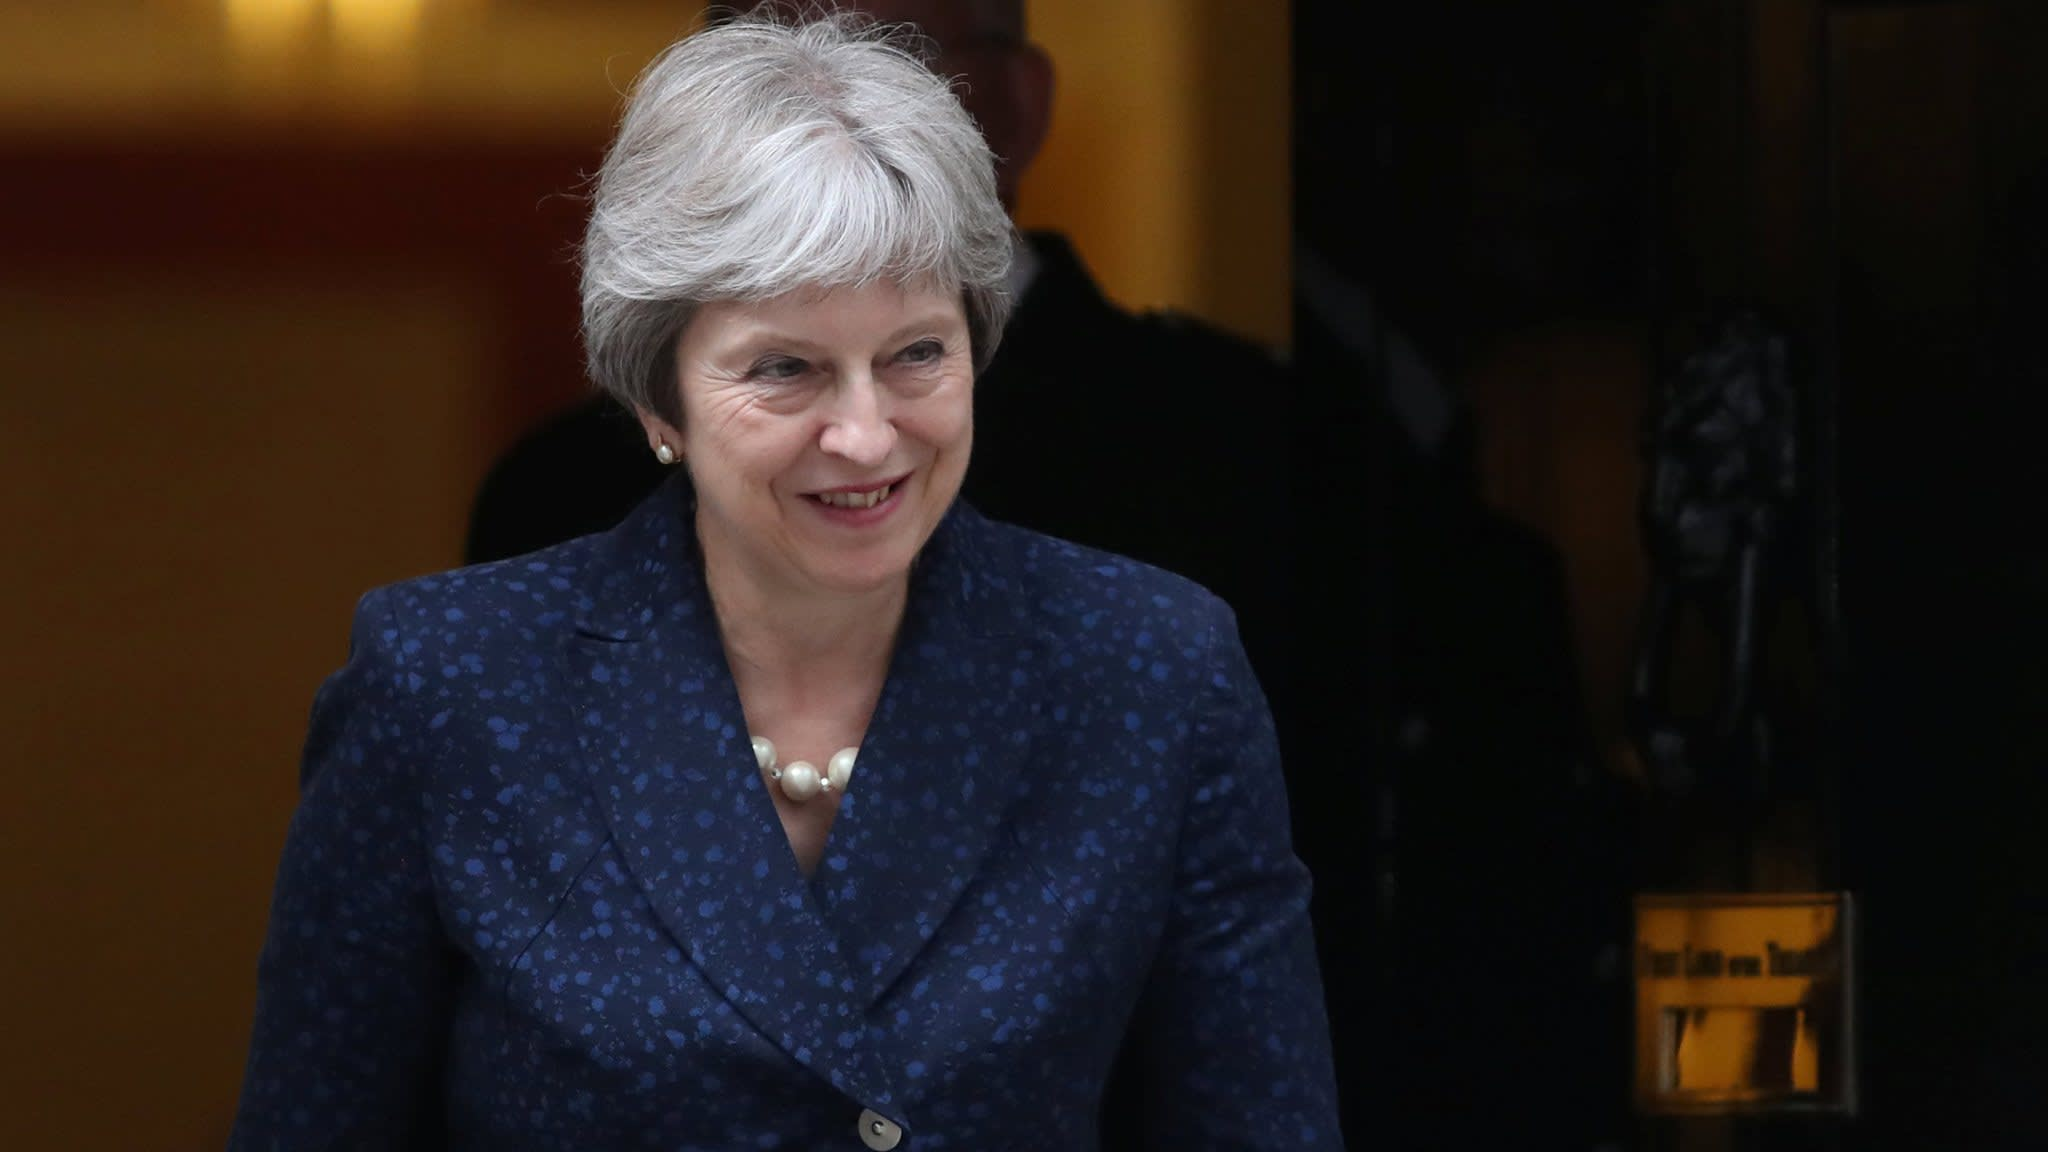 Theresa May fends off immediate leadership challenge